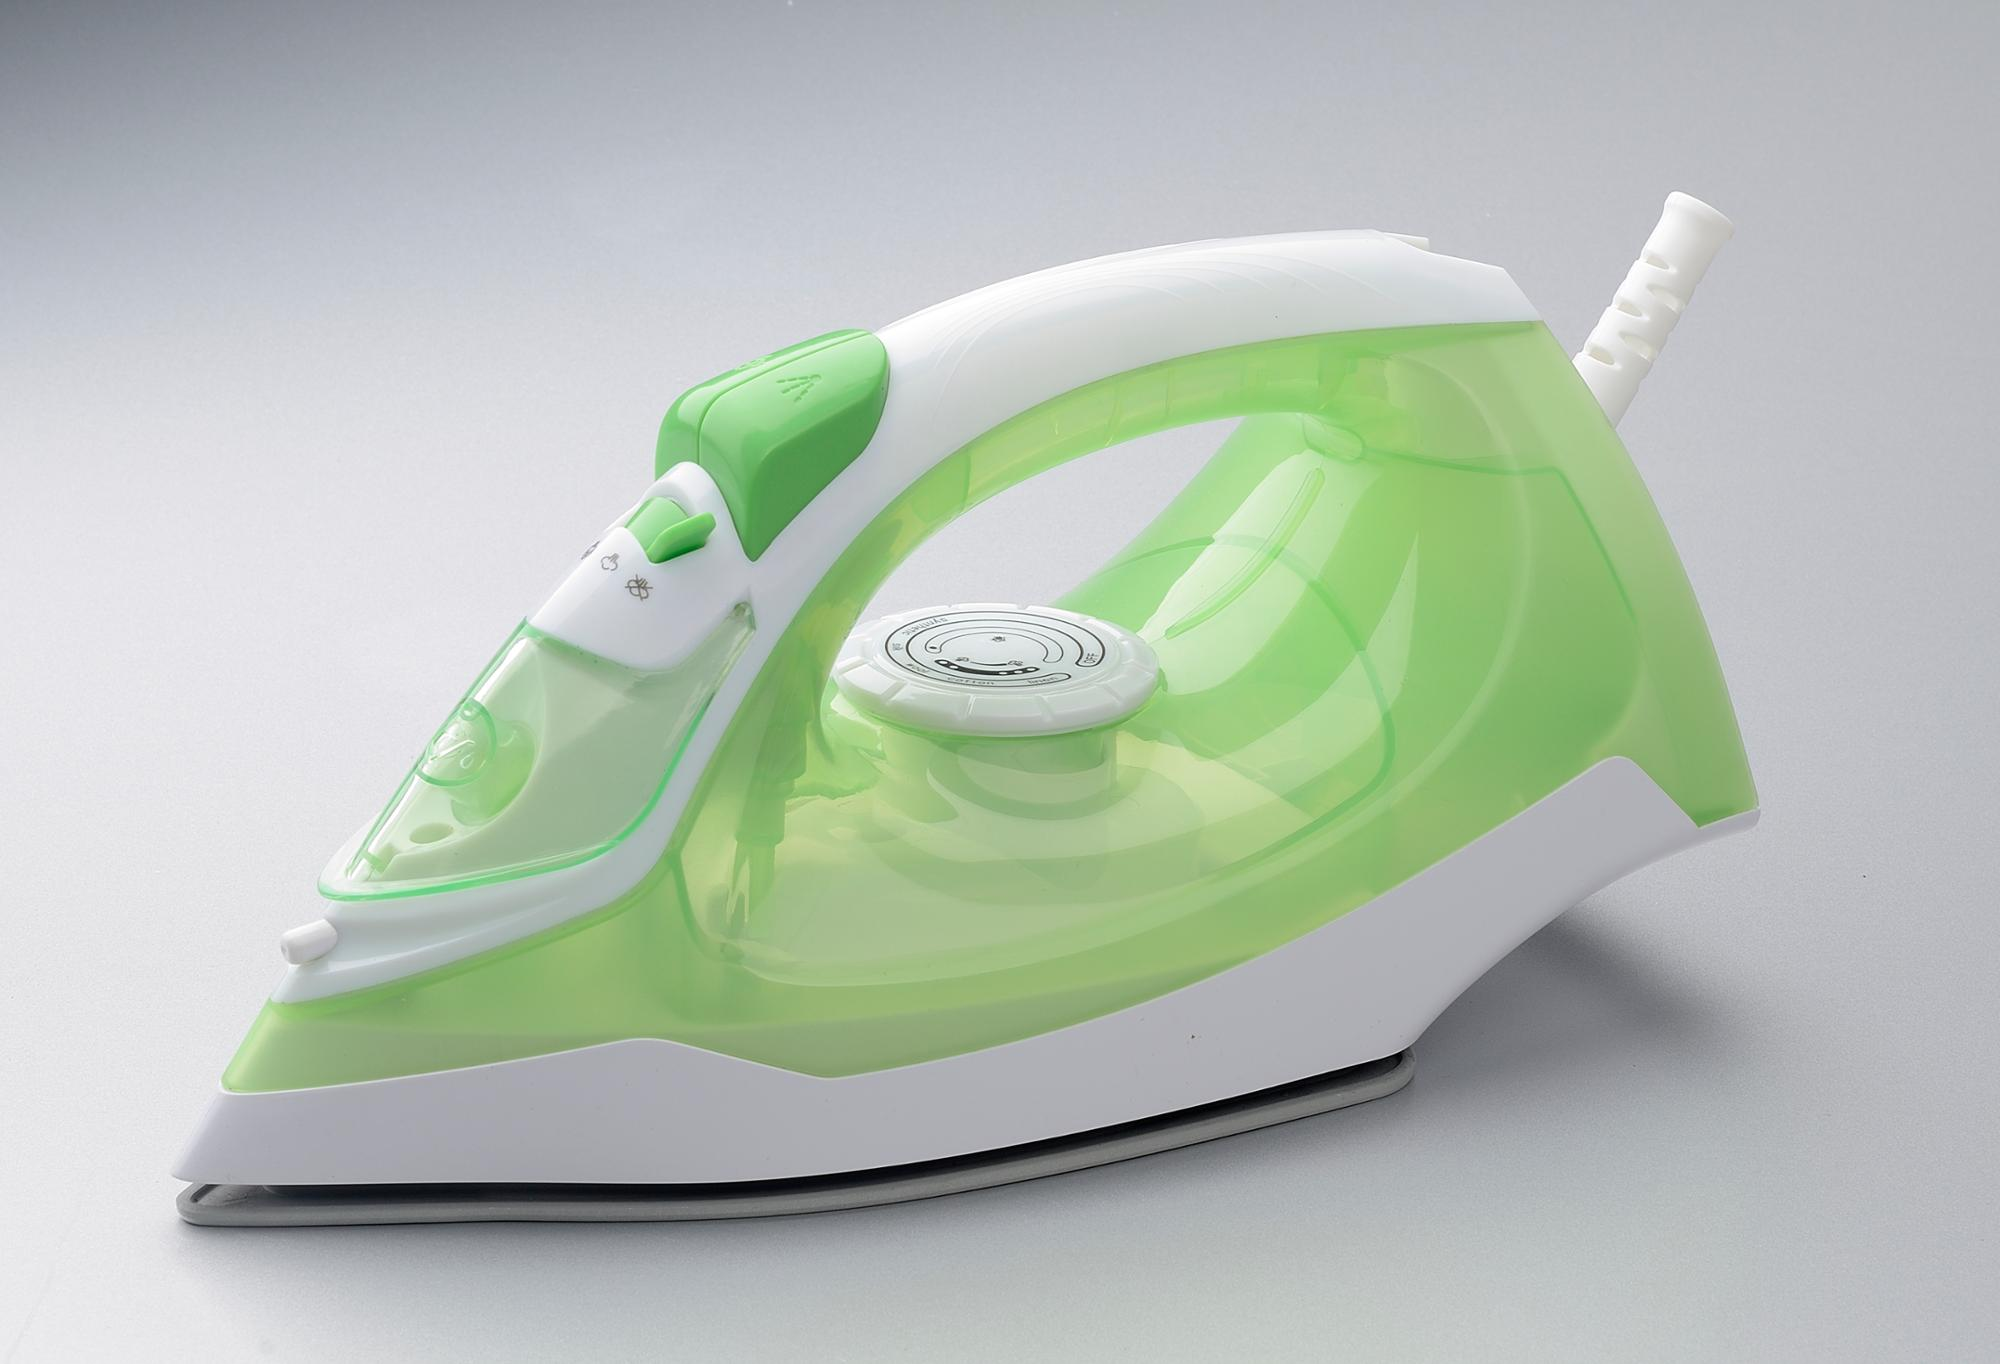 HANA auto shut-off vertical steam iron